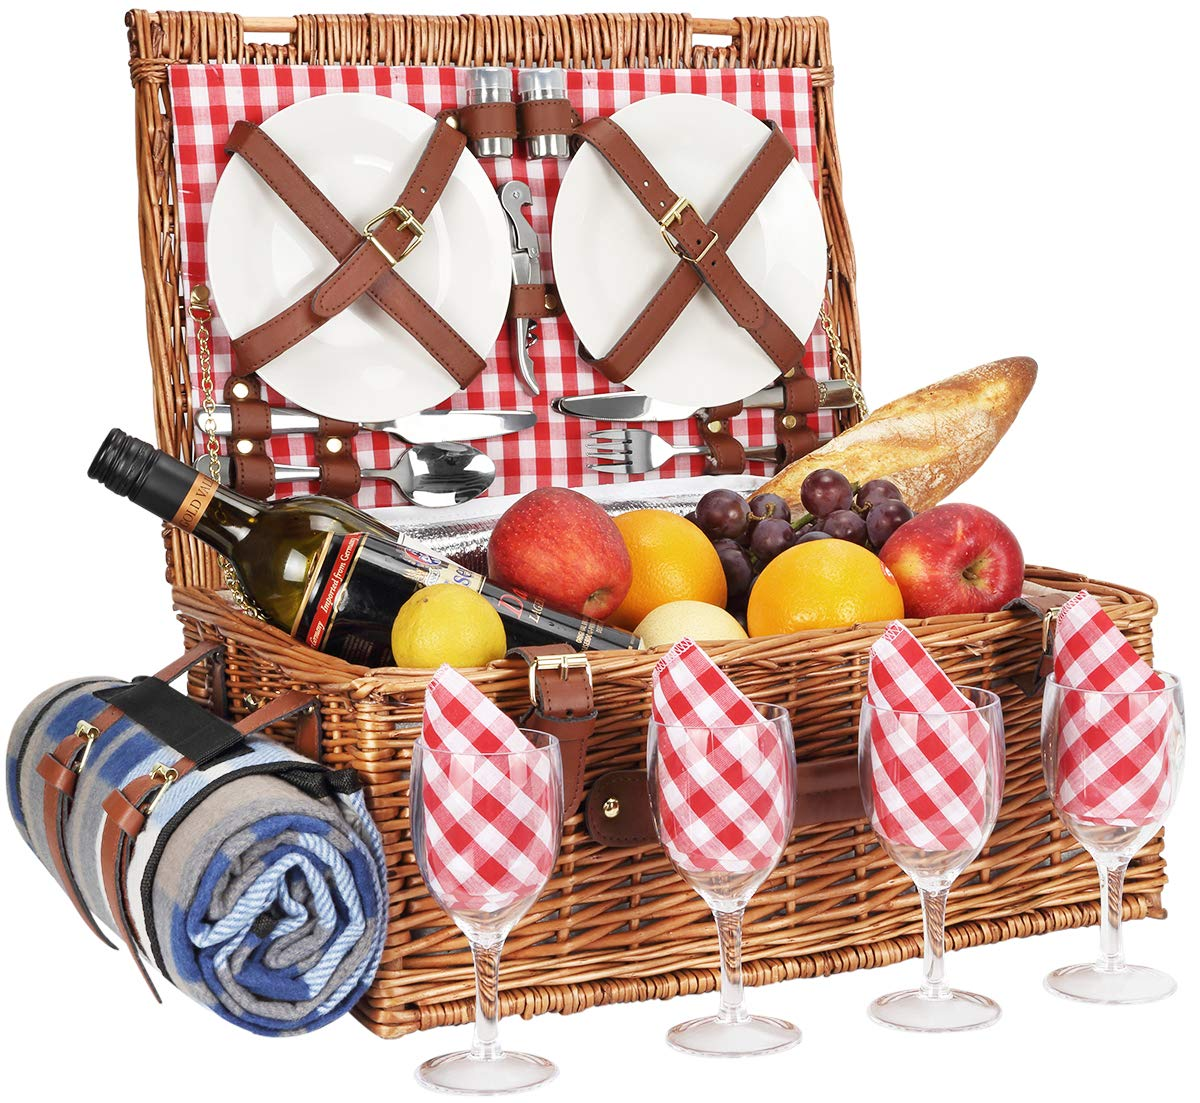 Sunflora Wicker Picnic Basket for 4 Persons Set with Large Insulated Compartment Premium Stainless Steel Cutlery and Portable Picnic Blanket for Family Camping, Gift